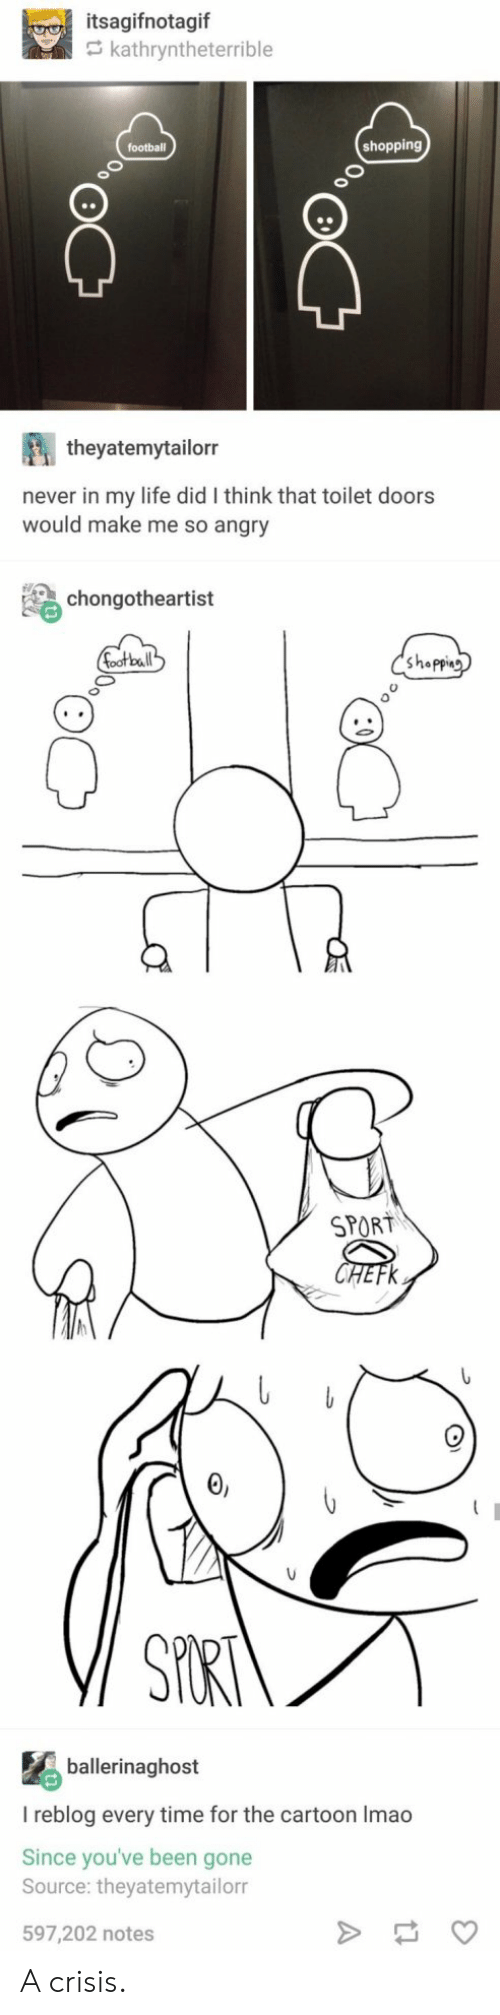 So Angry: itsagifnotagif  kathryntheterrible  shopping  theyatemytailorr  never in my life did I think that toilet doors  would make me so angry  chongotheartist  bal  Shappin  SPORT  ballerinaghost  I reblog every time for the cartoon Imao  Since you've been gone  Source: theyatemytailorr  597,202 notes A crisis.